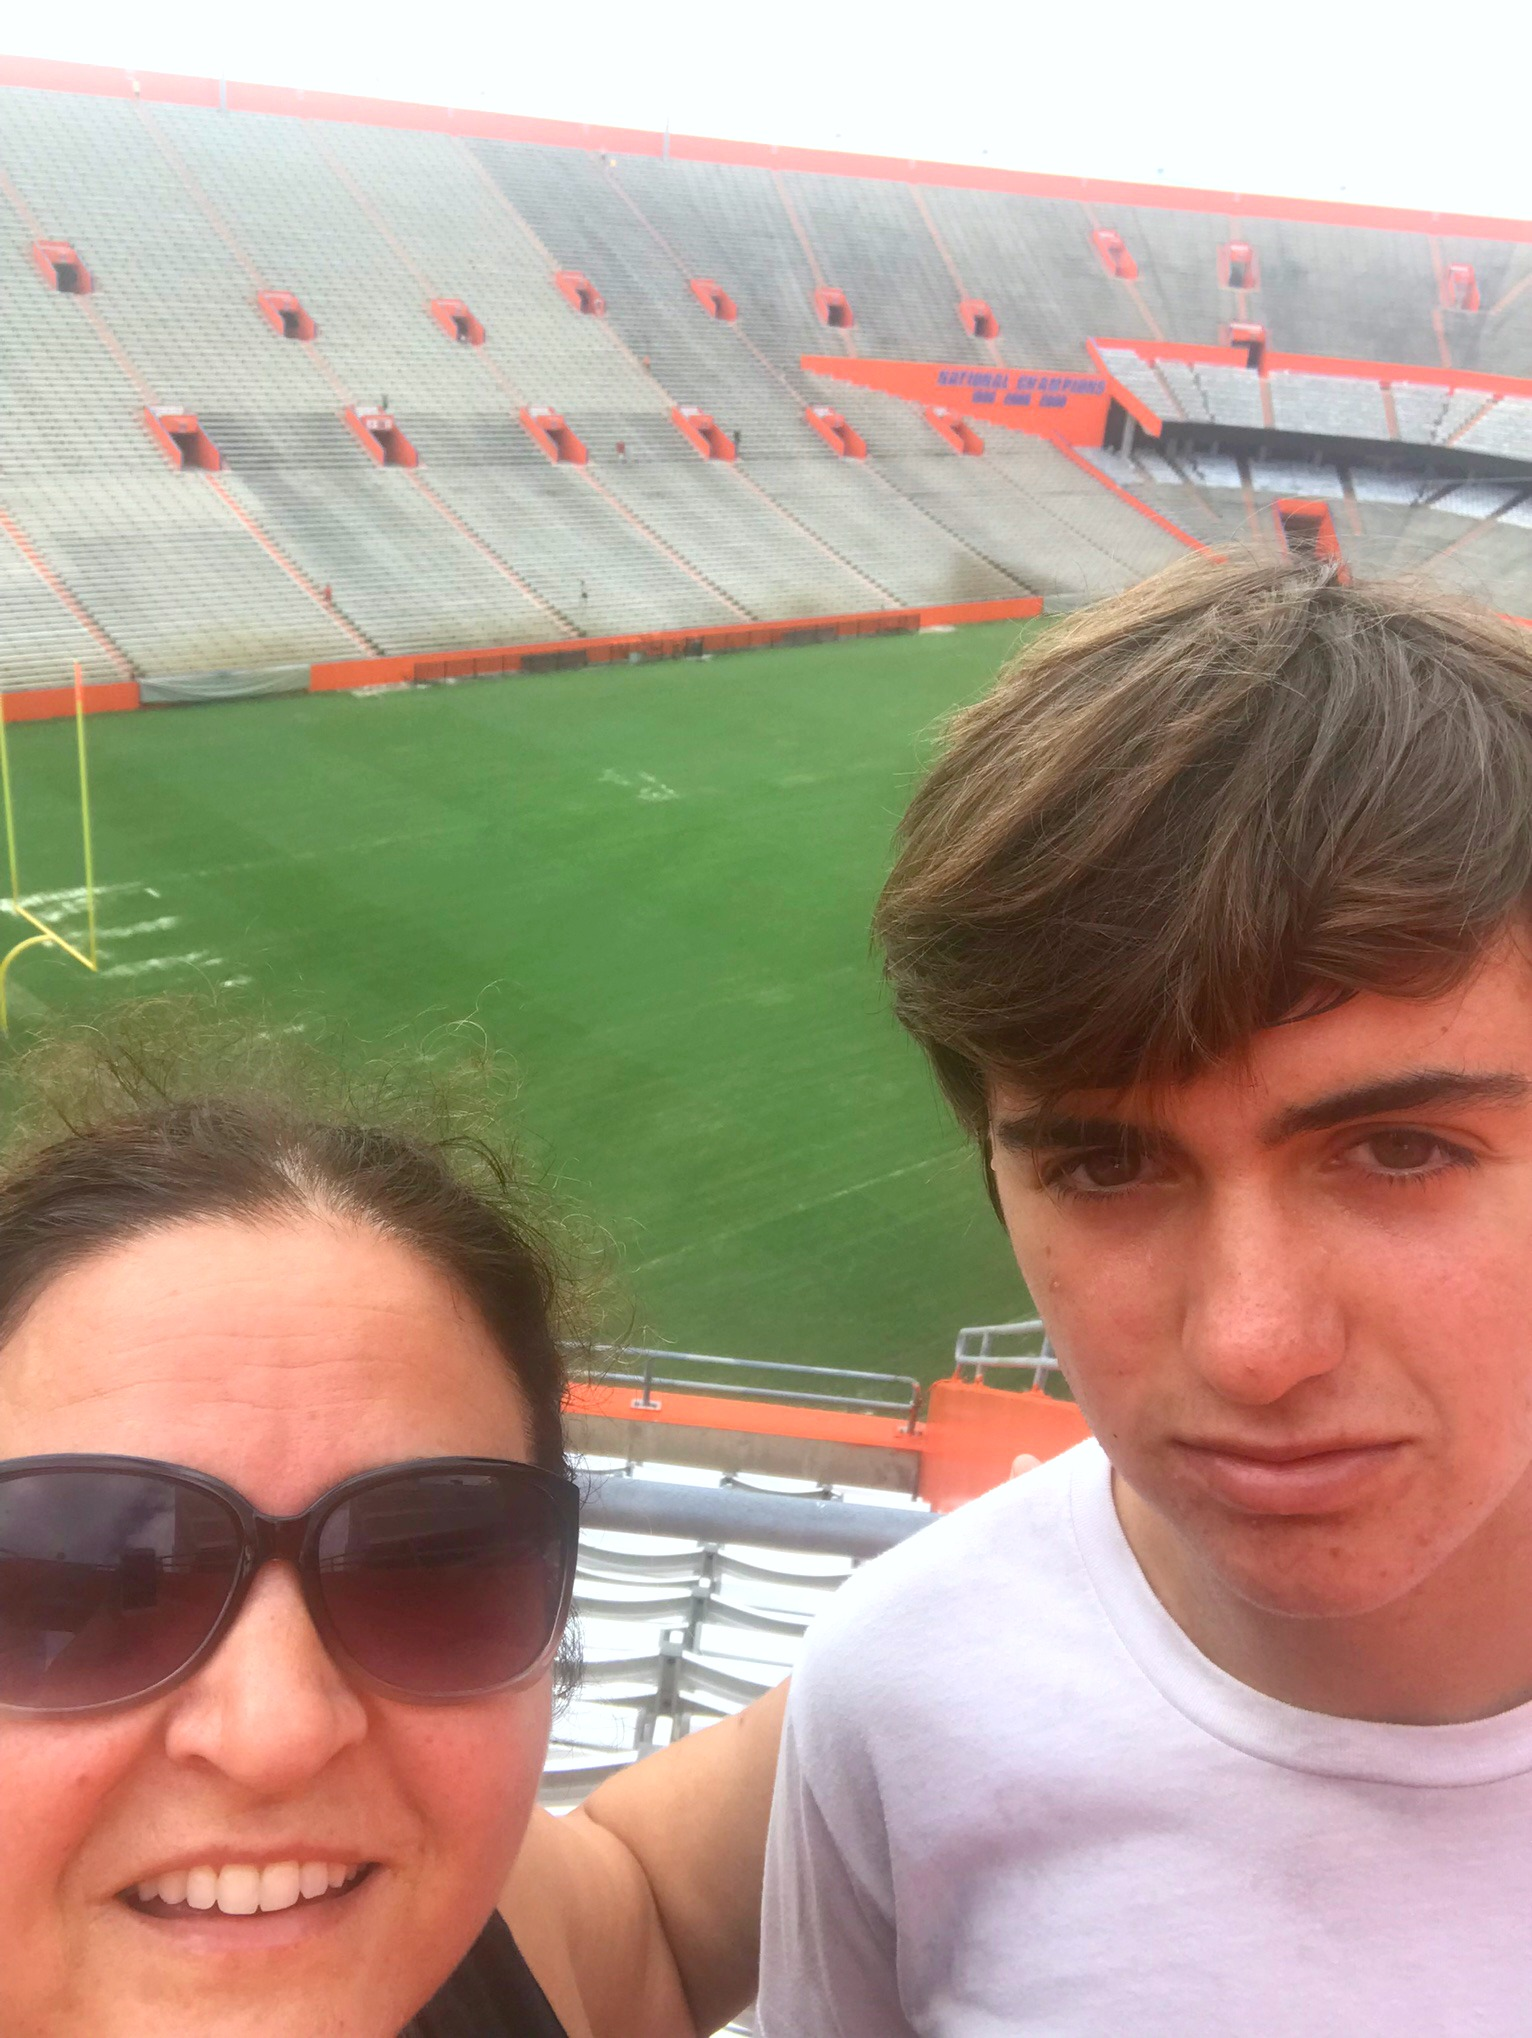 mom and son tired after running the stadium stairs at Gator Stadium University of Florida